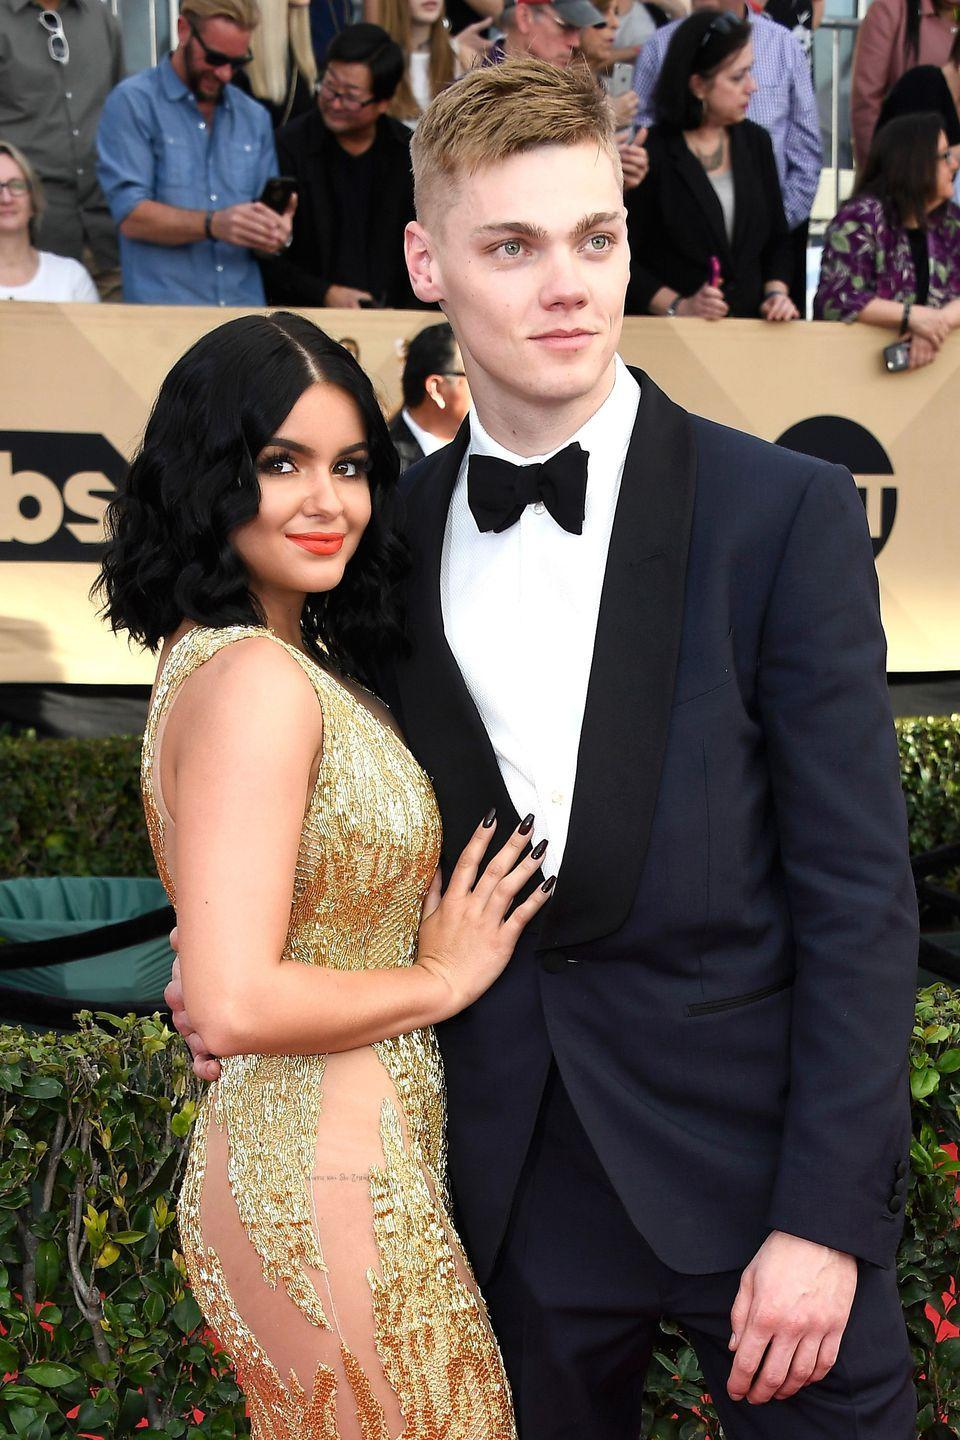 "<p>The 21-year-old <em>Modern Family</em> actress is ten years younger than boyfriend Levi Meaden. The couple celebrated their first anniversary in November of 2017 and are currently living together. In regard to the negative comments about their age difference, Winter told <em><a href=""http://www.refinery29.com/2017/05/156417/ariel-winter-body-confidence-interview"" rel=""nofollow noopener"" target=""_blank"" data-ylk=""slk:Refiney29"" class=""link rapid-noclick-resp"">Refiney29</a> </em>in a 2017 interview: ""I don't understand why someone would even comment on our situation at all. There are tons of people of all ages that live with their boyfriend.""</p>"